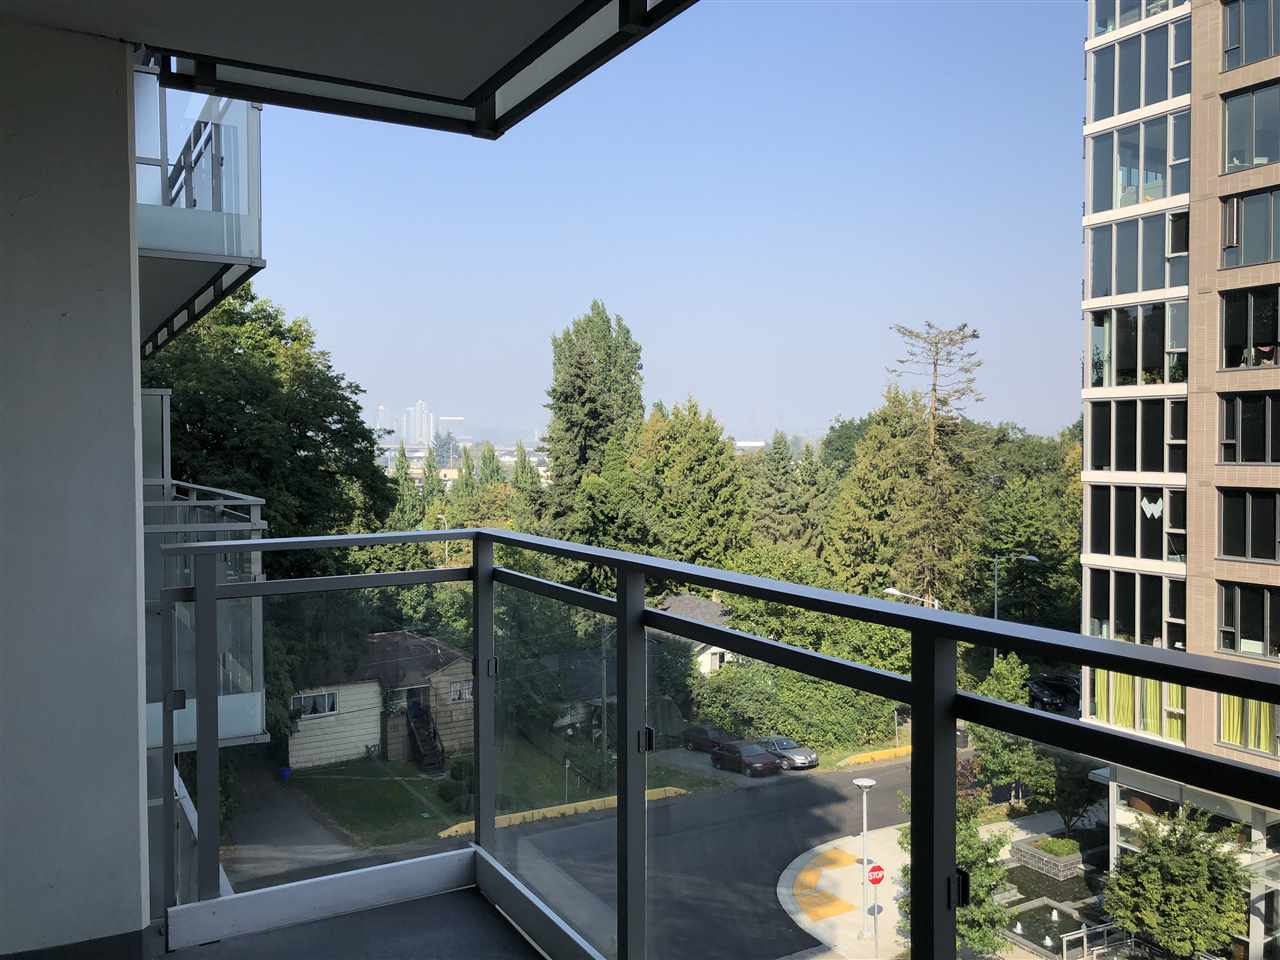 805 3233 KETCHESON ROAD - West Cambie Apartment/Condo for sale, 1 Bedroom (R2495647) - #10